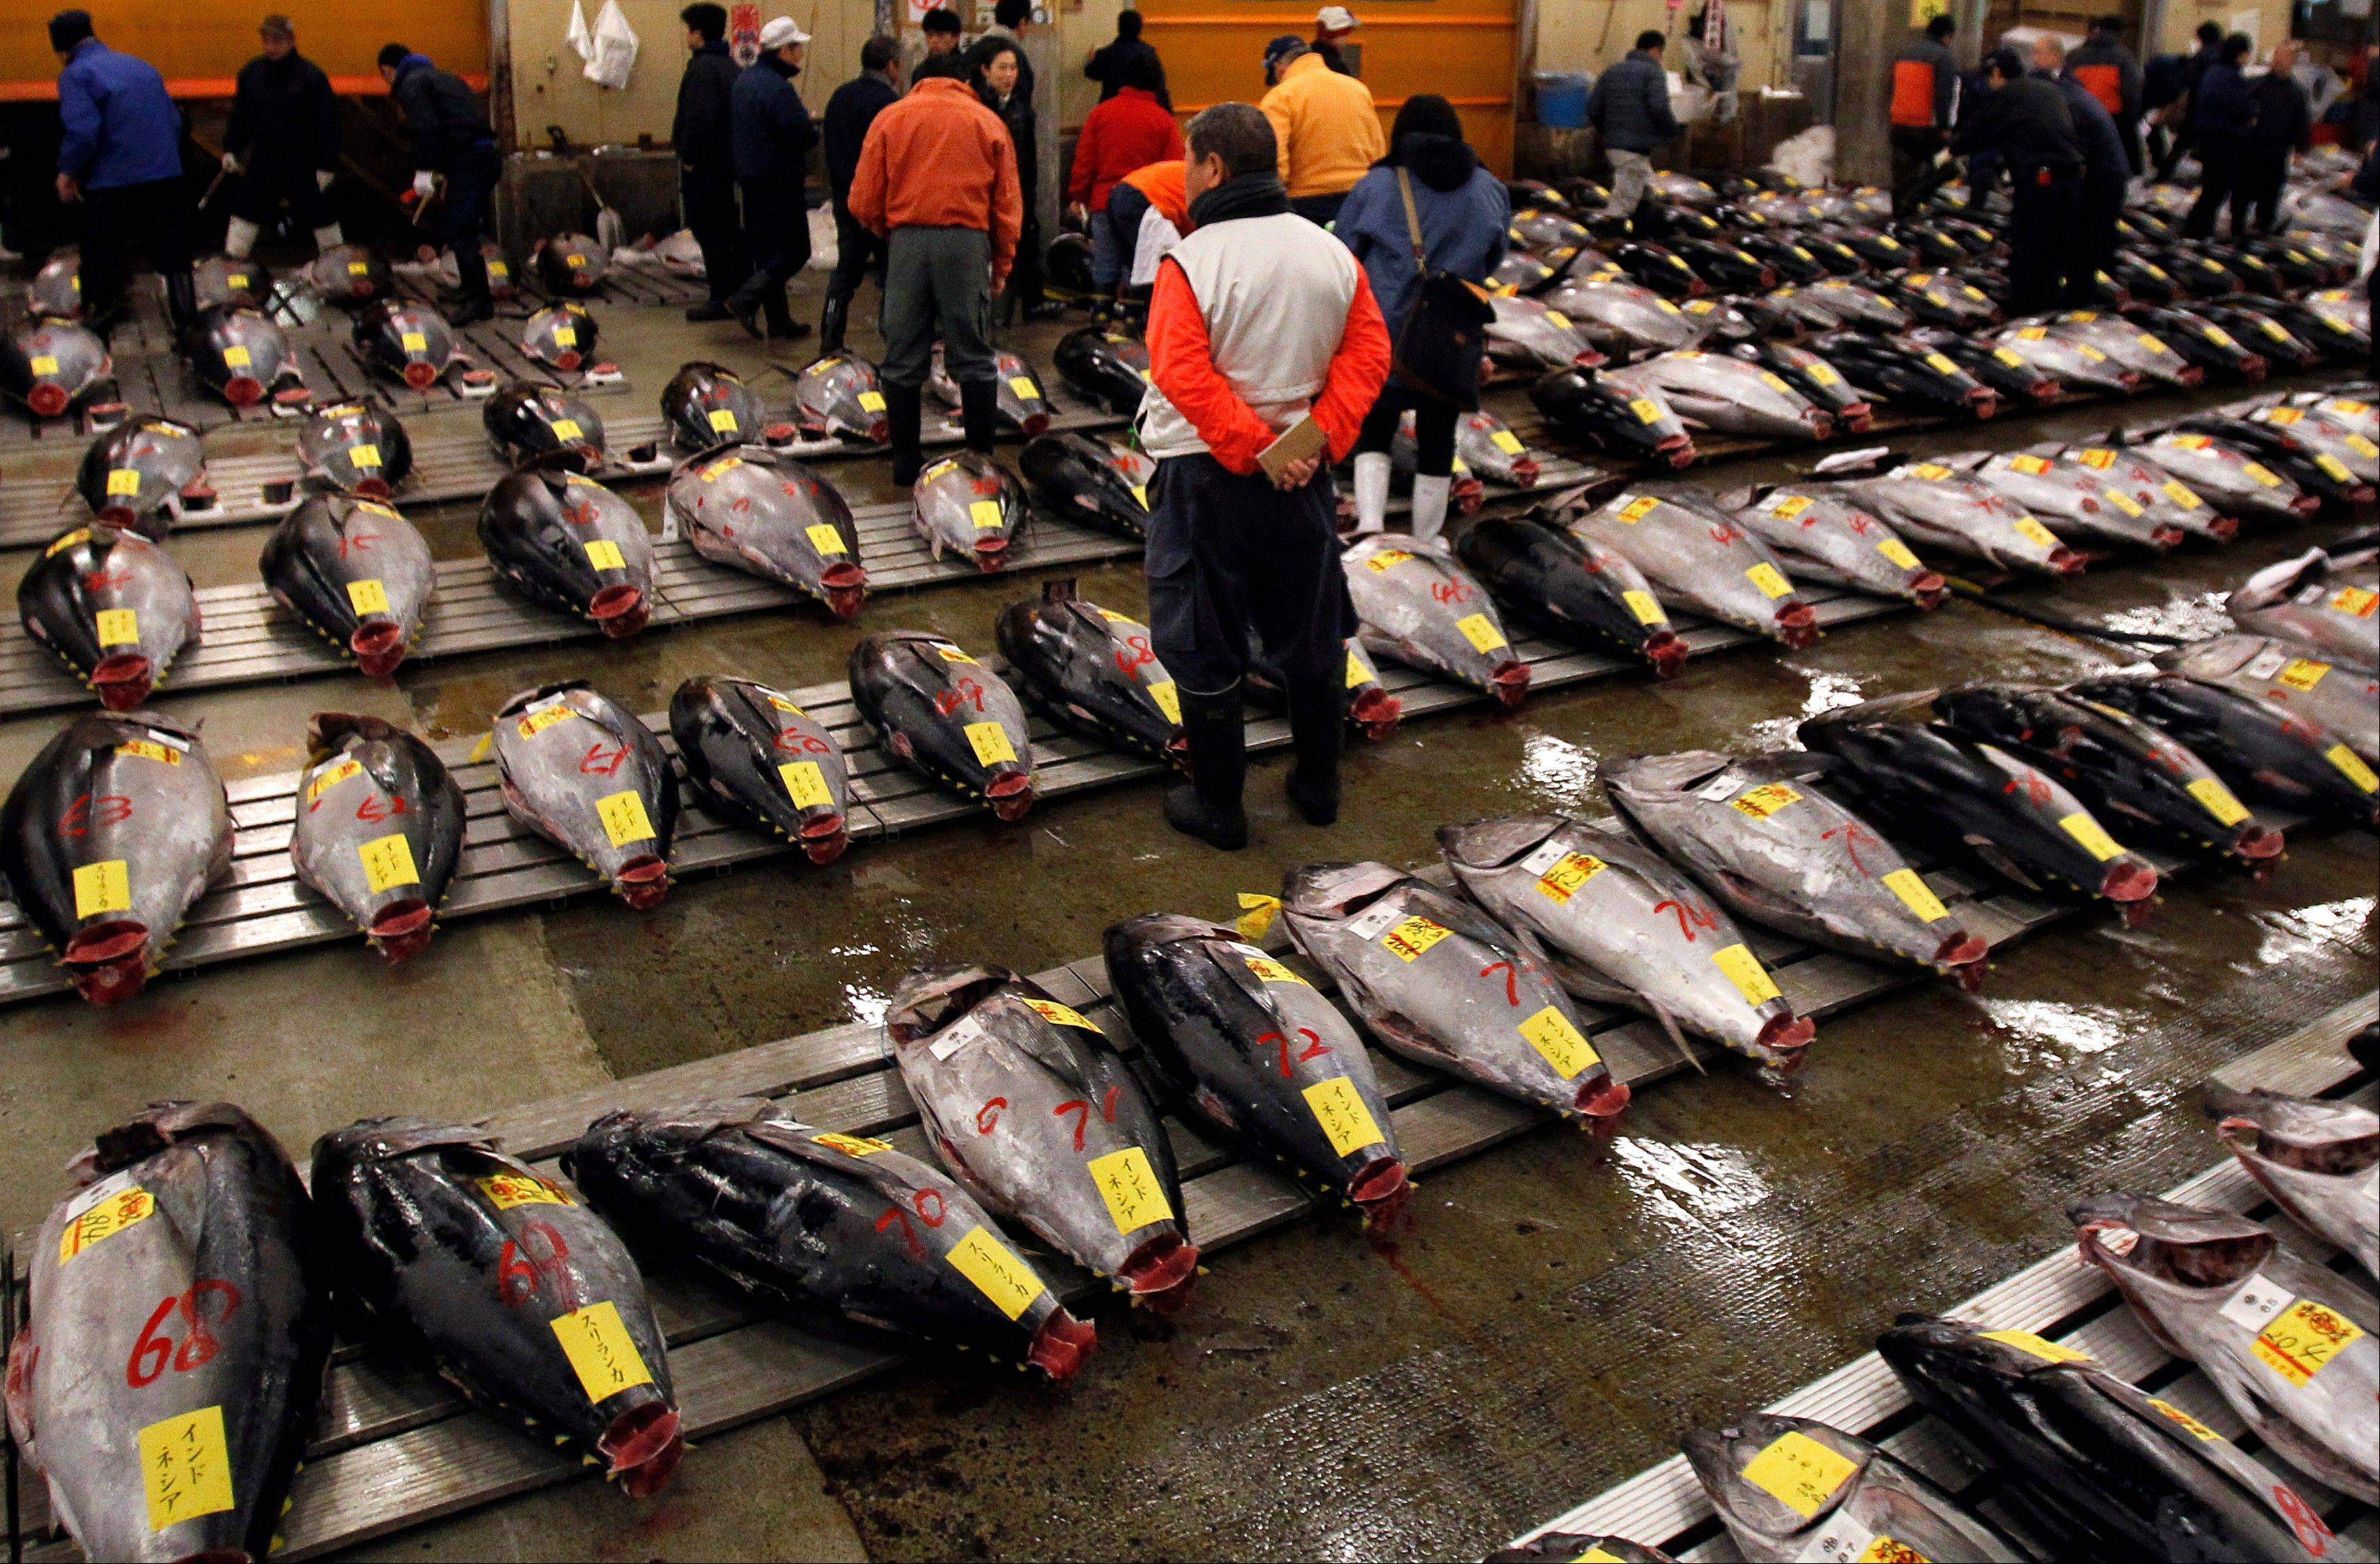 Catching bluefin tuna, called ìhon-maguroî here, is a lucrative business. A single full-grown specimen can sell for 2 million yen, or $20,000, at Tokyo's sprawling Tsukiji fish market. Japanese fishermen are vying with Korean, Taiwanese and Mexican fisherman for a piece of a $900 million wholesale market.